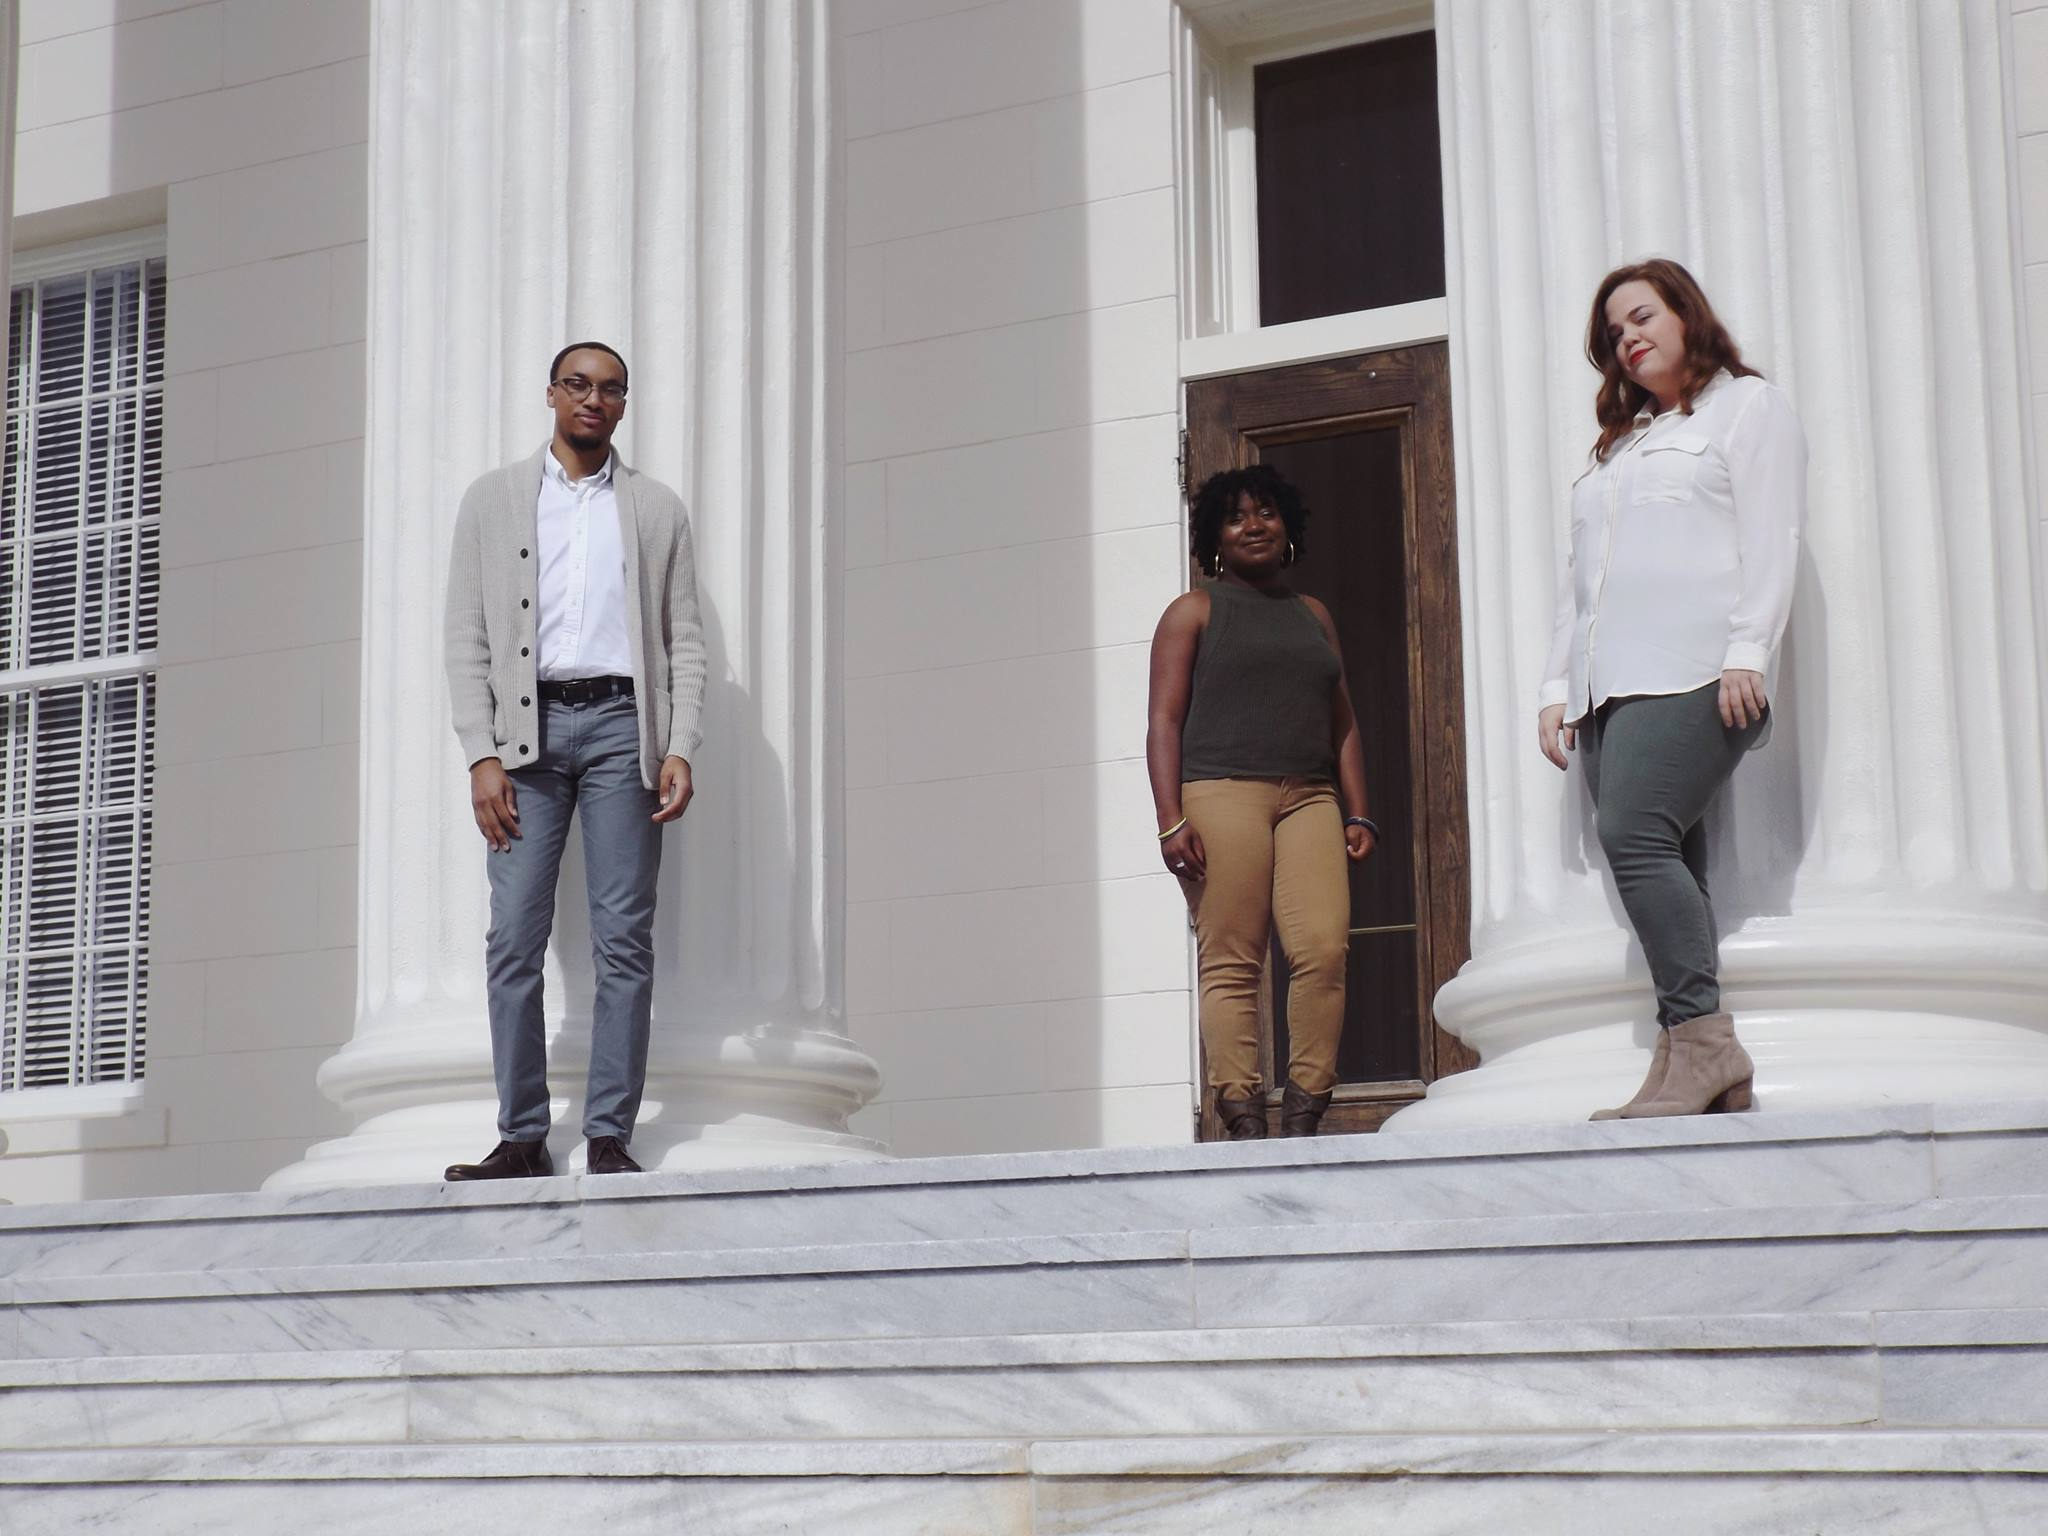 Moving Foreword: How 3 millennials are changing the narrative about life in the South